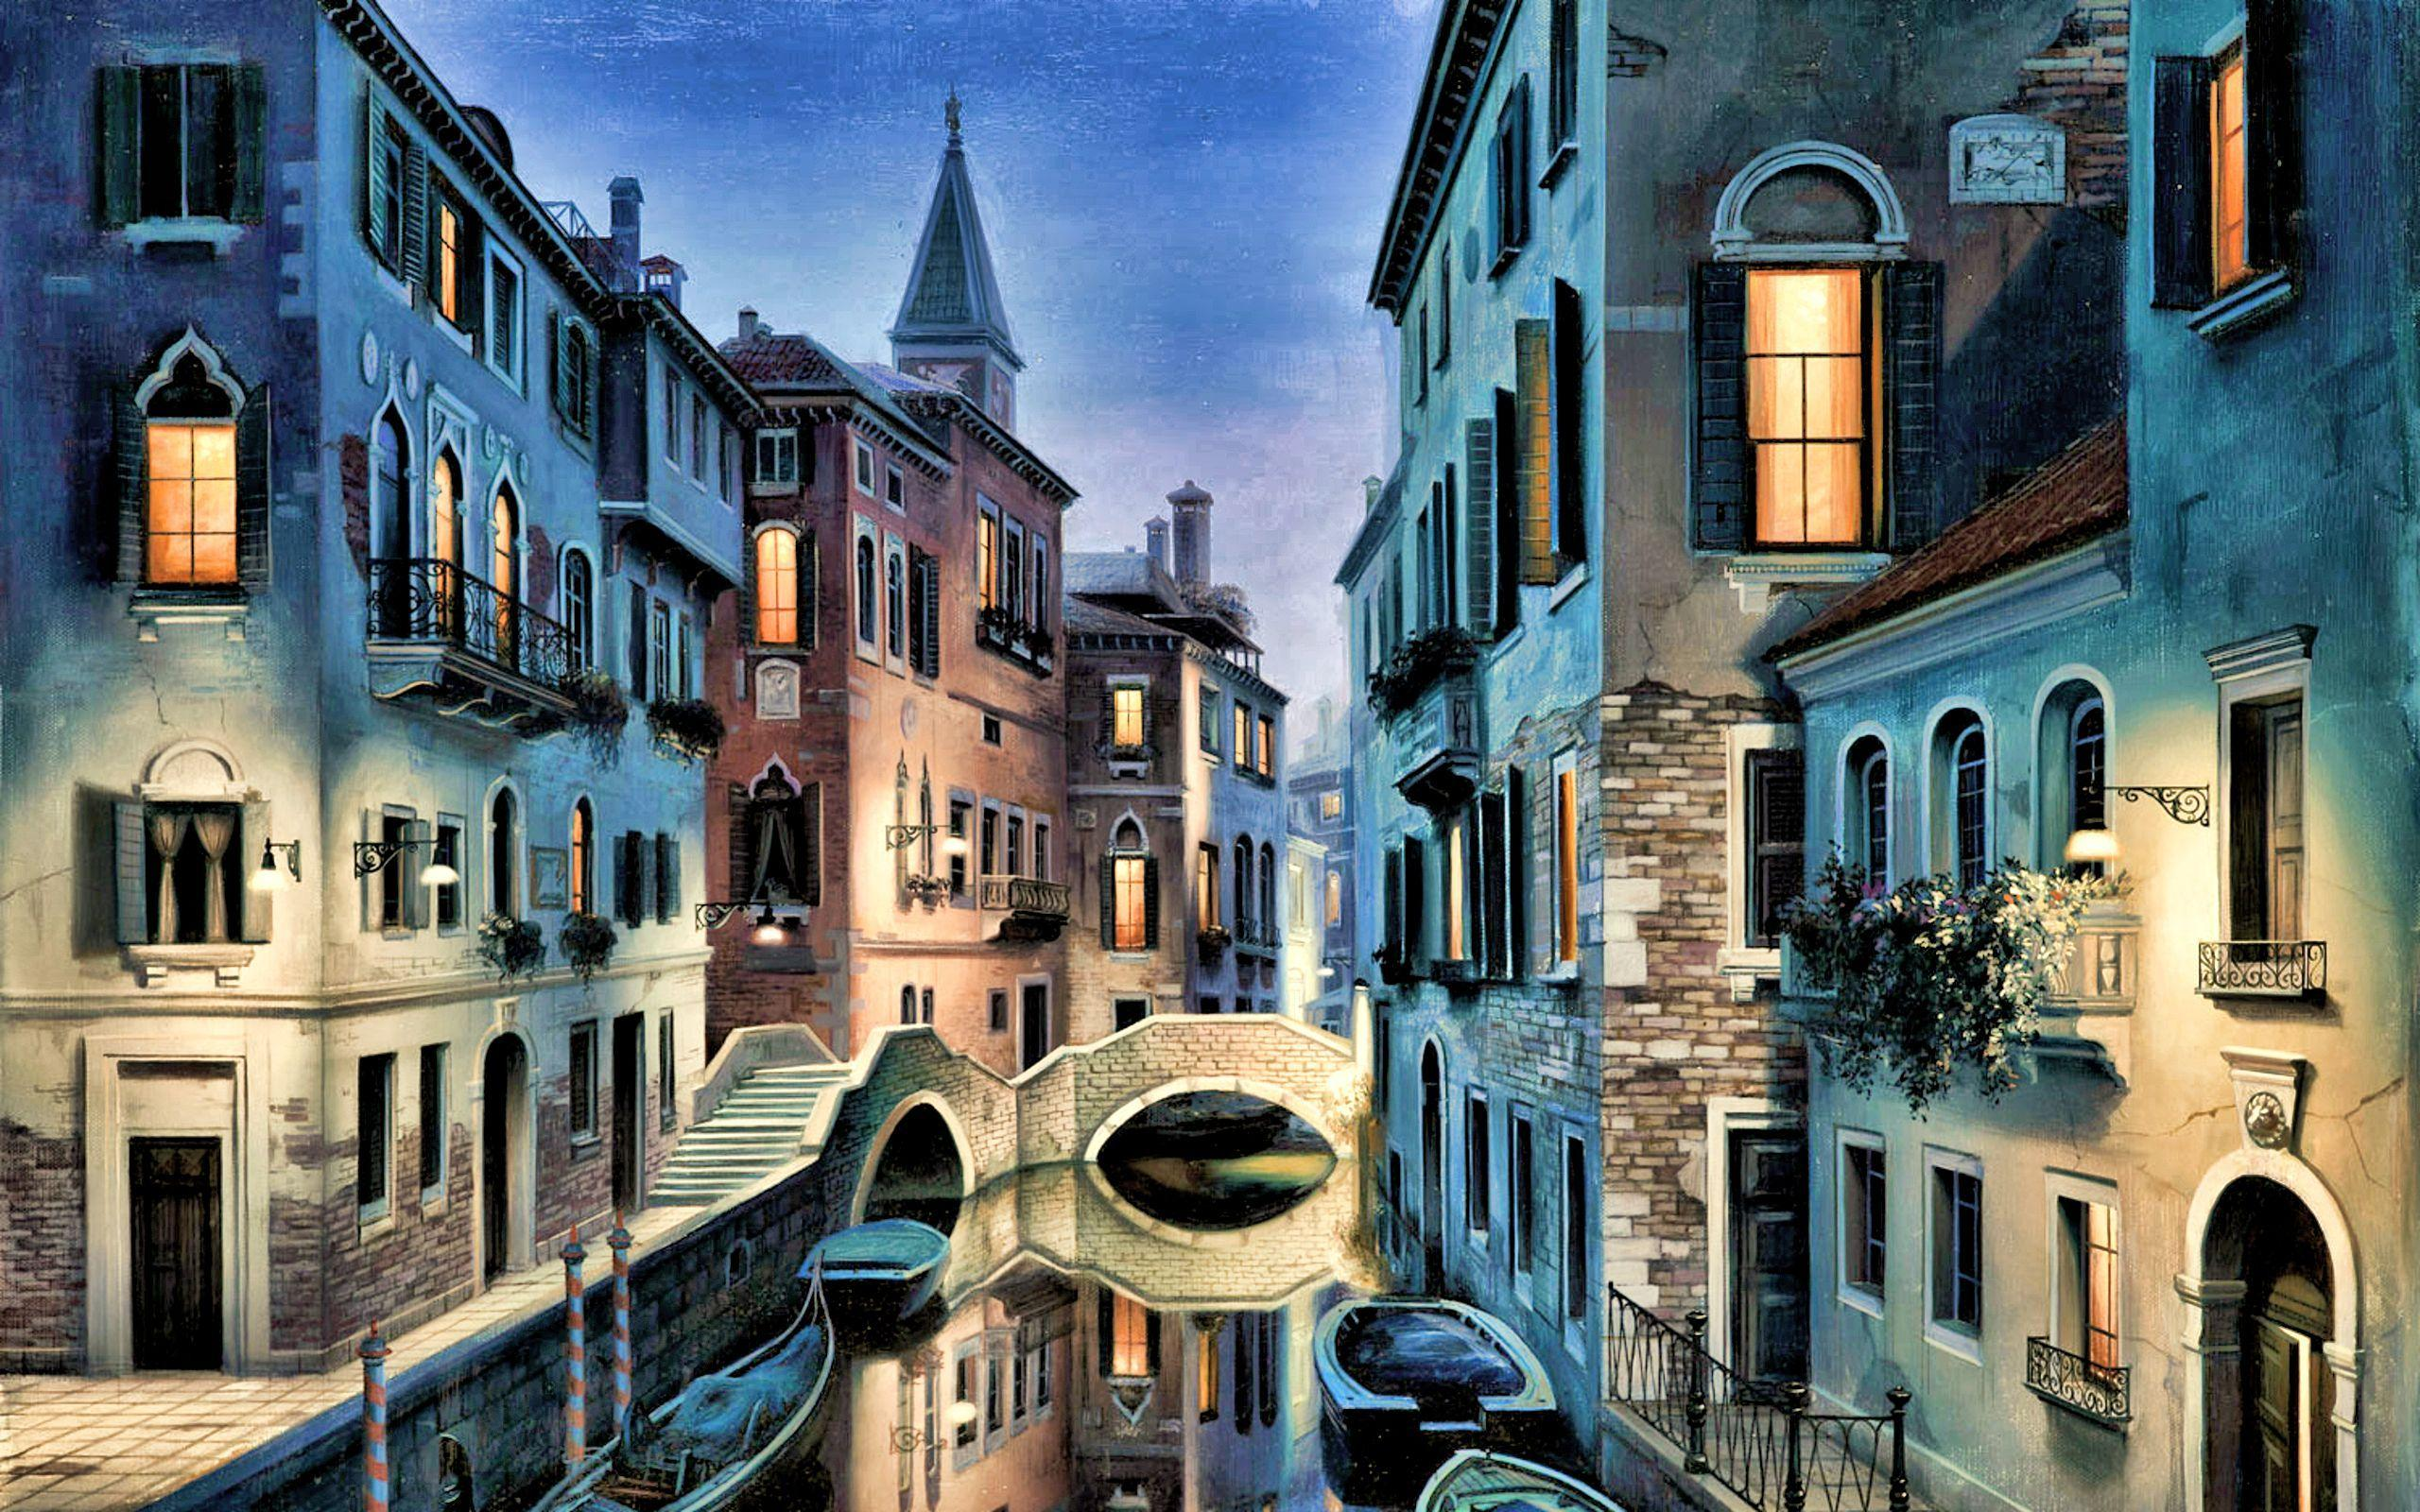 WallpaperMISC - Venice City HD Wallpapers Free TOP High Quality ...